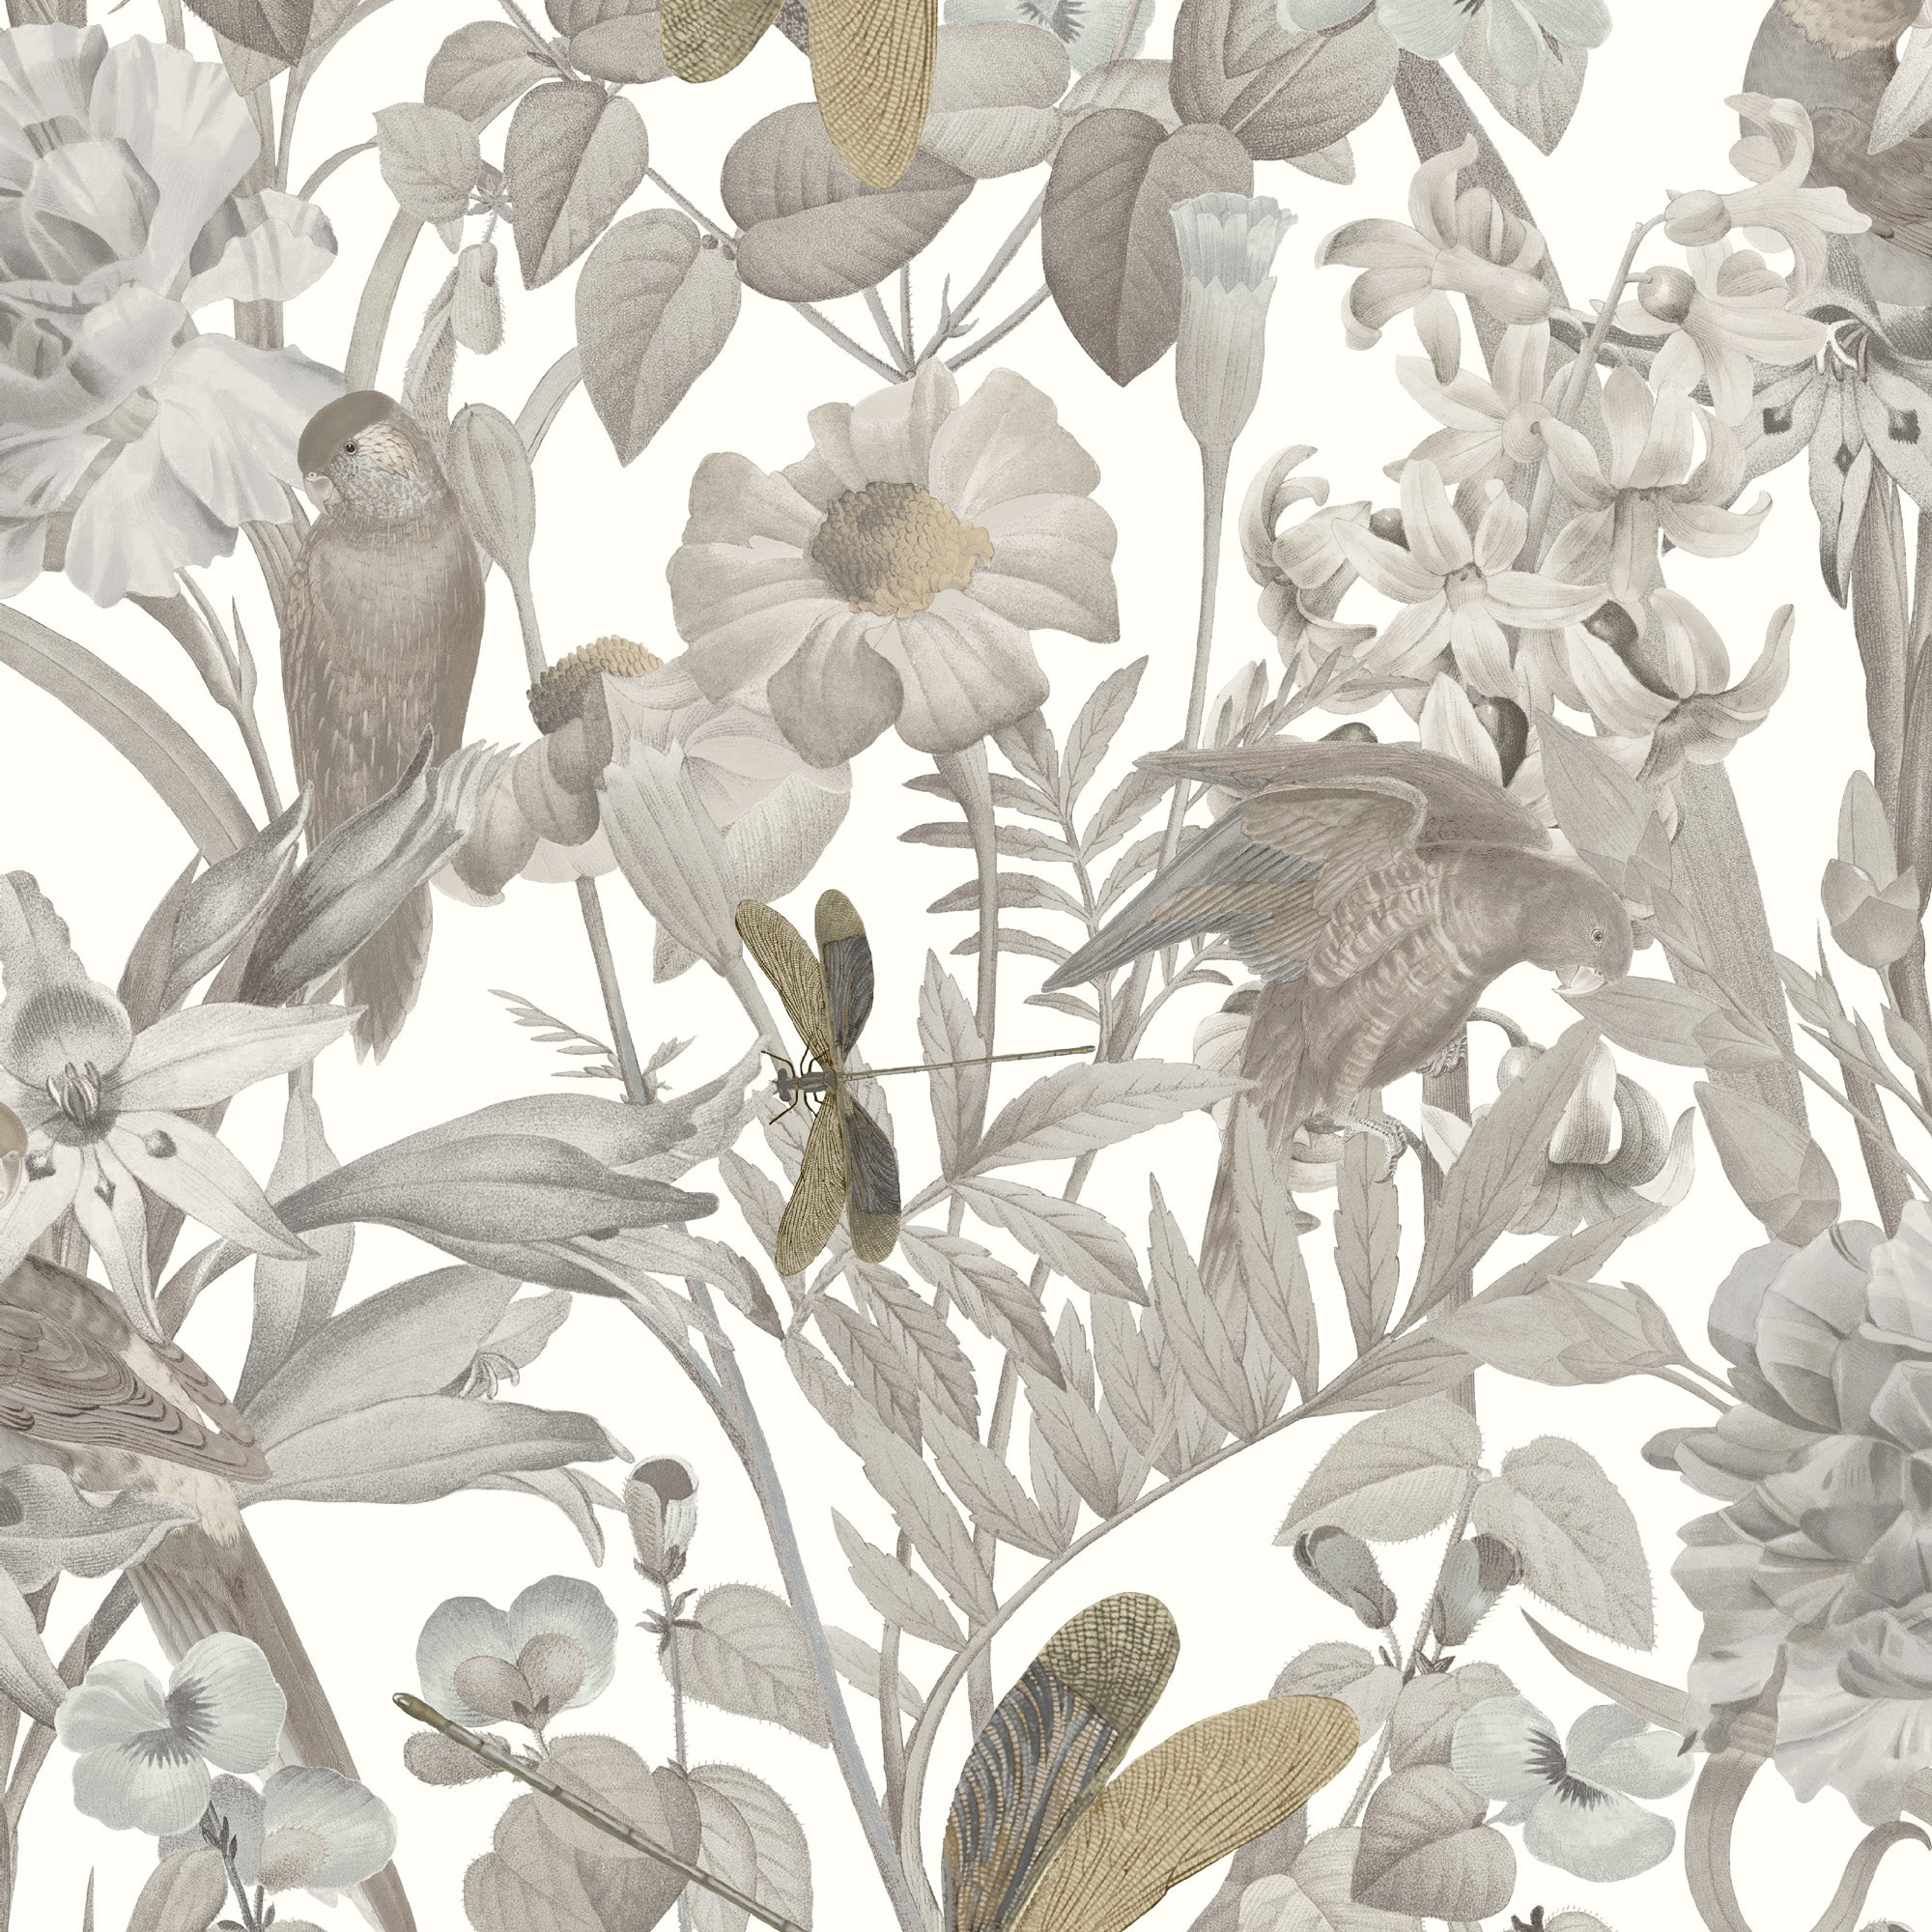 Tropical Floral In Taupe And Tan, 8191 33